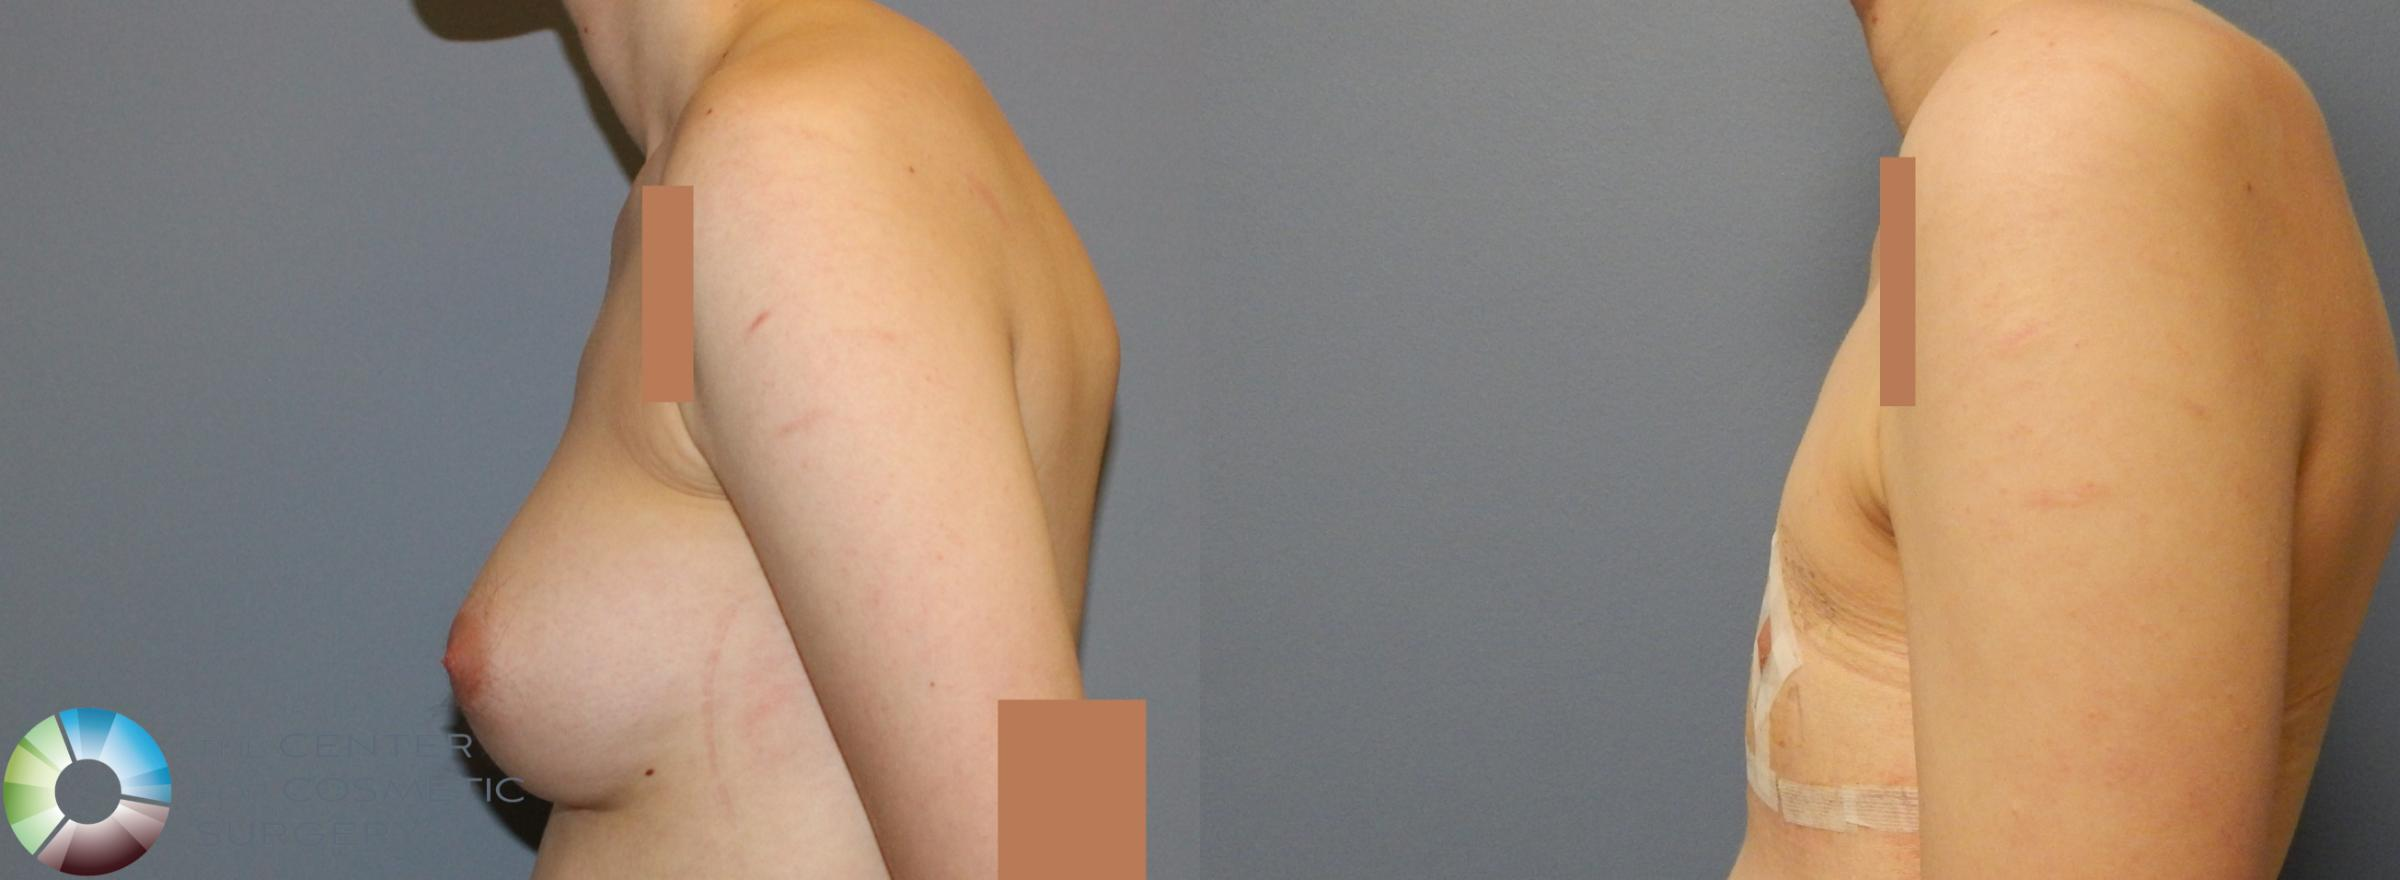 FTM Top Surgery/Chest Masculinization Case 857 Before & After View #3 | Golden, CO | The Center for Cosmetic Surgery